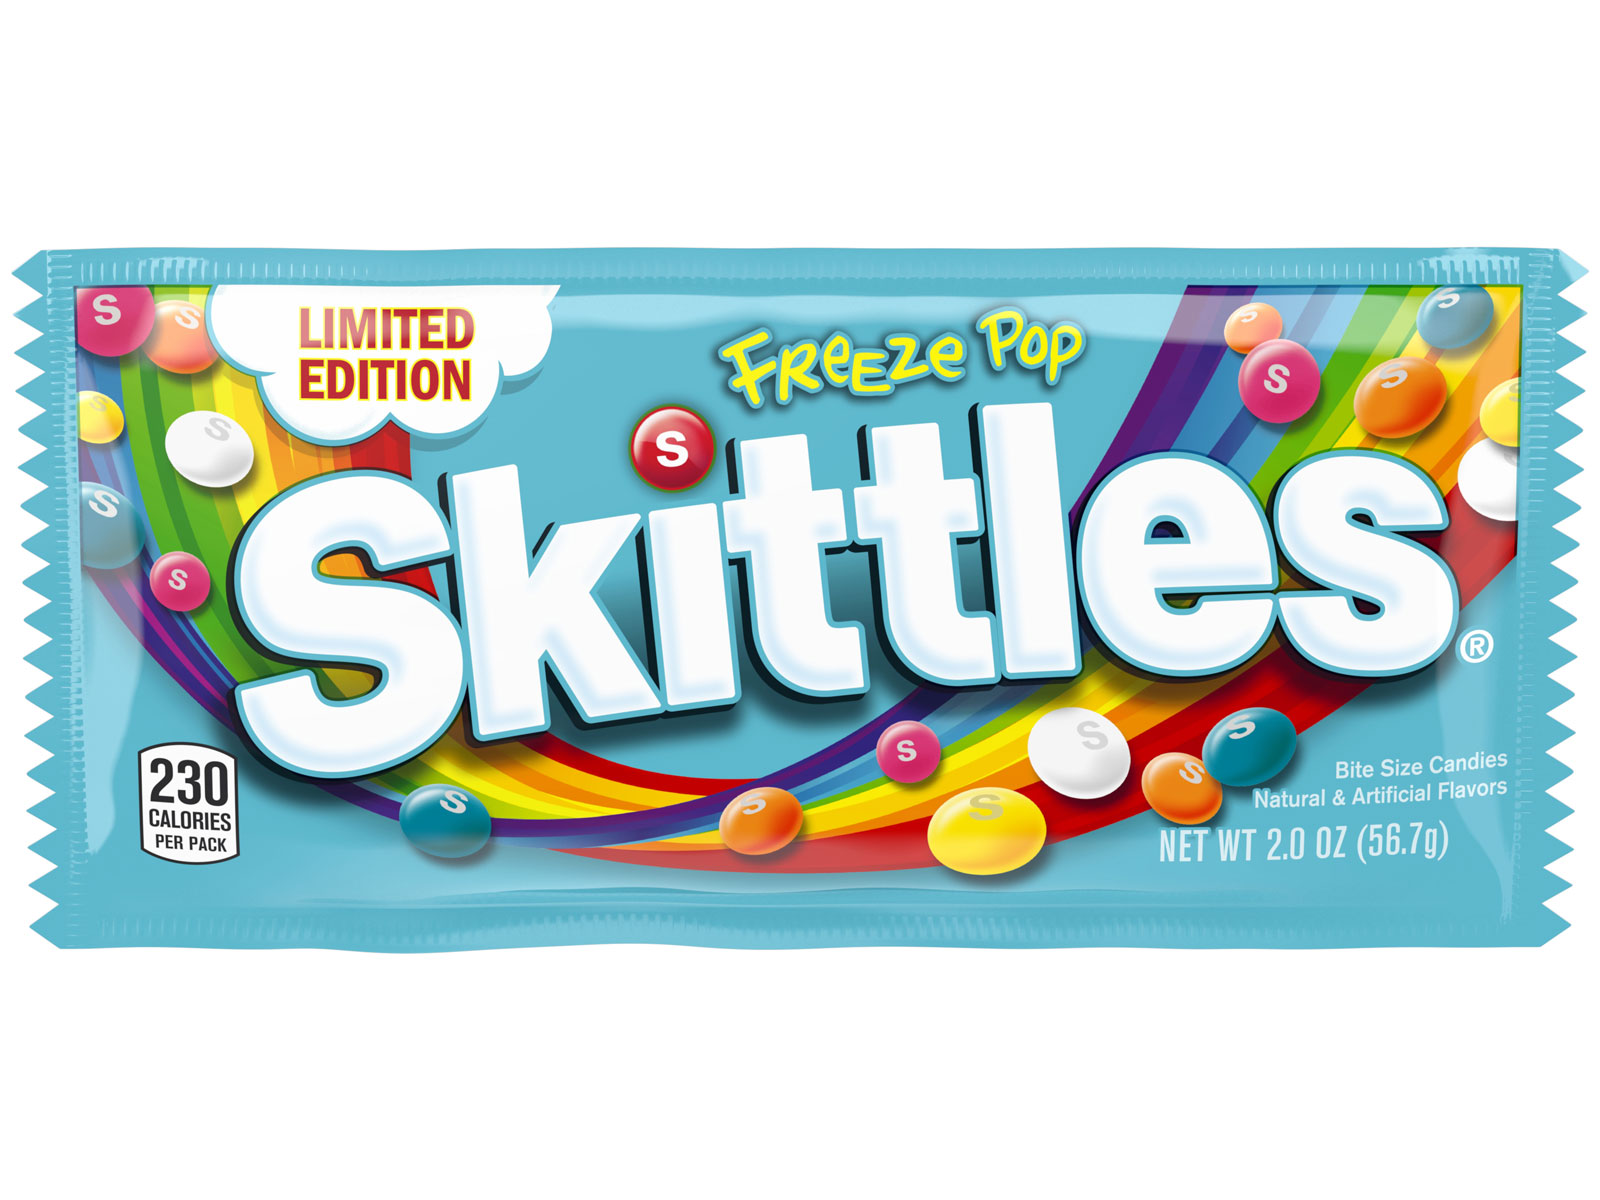 Skittles Freeze Pop